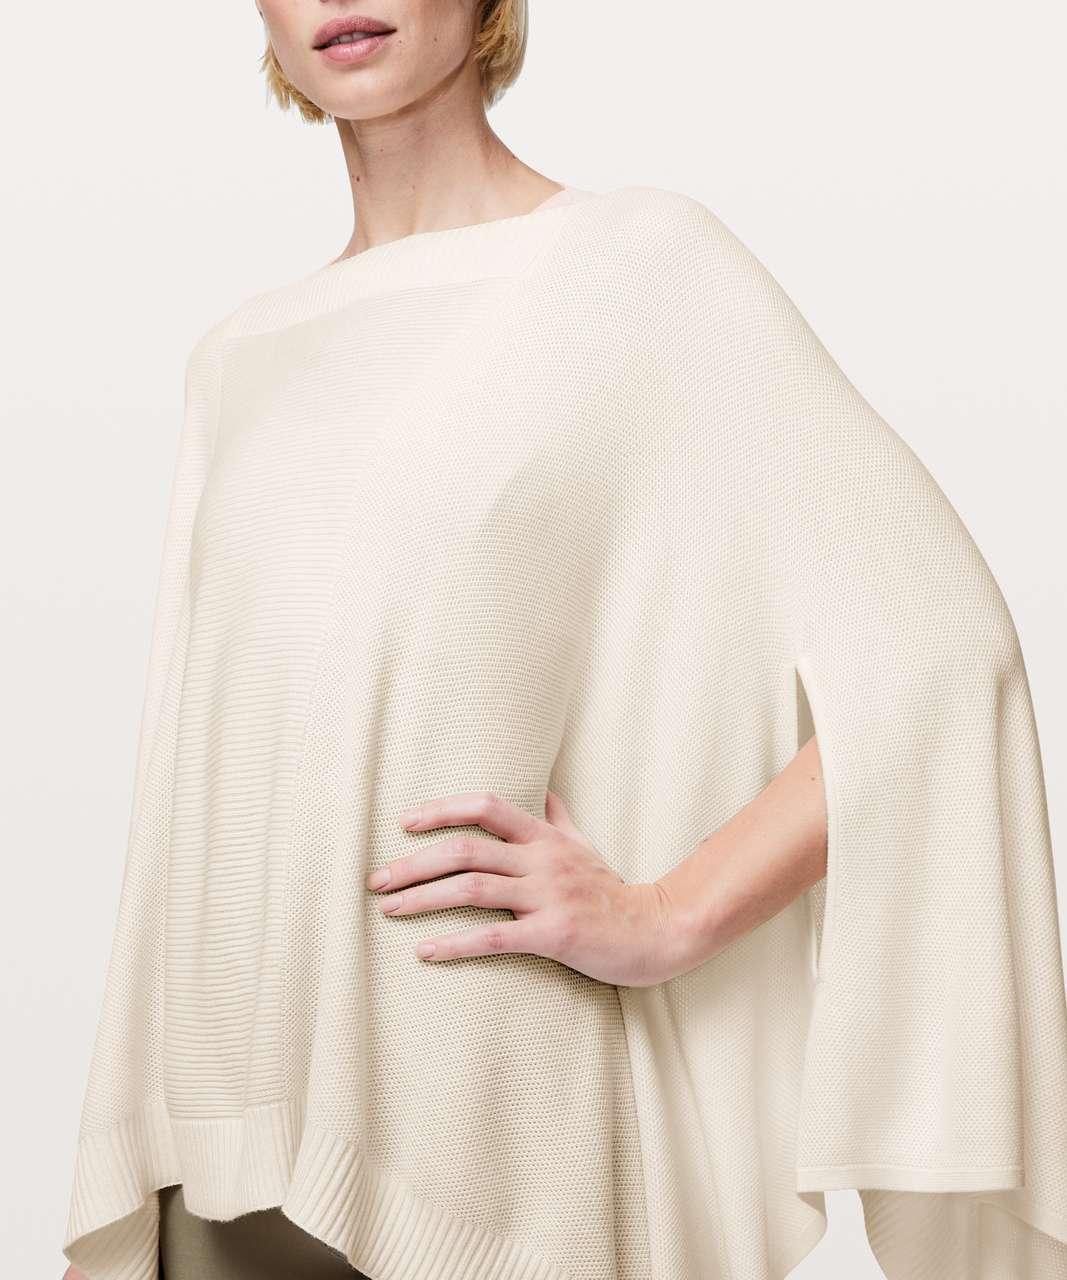 Lululemon Forward Flow Cape - Soft Ivory